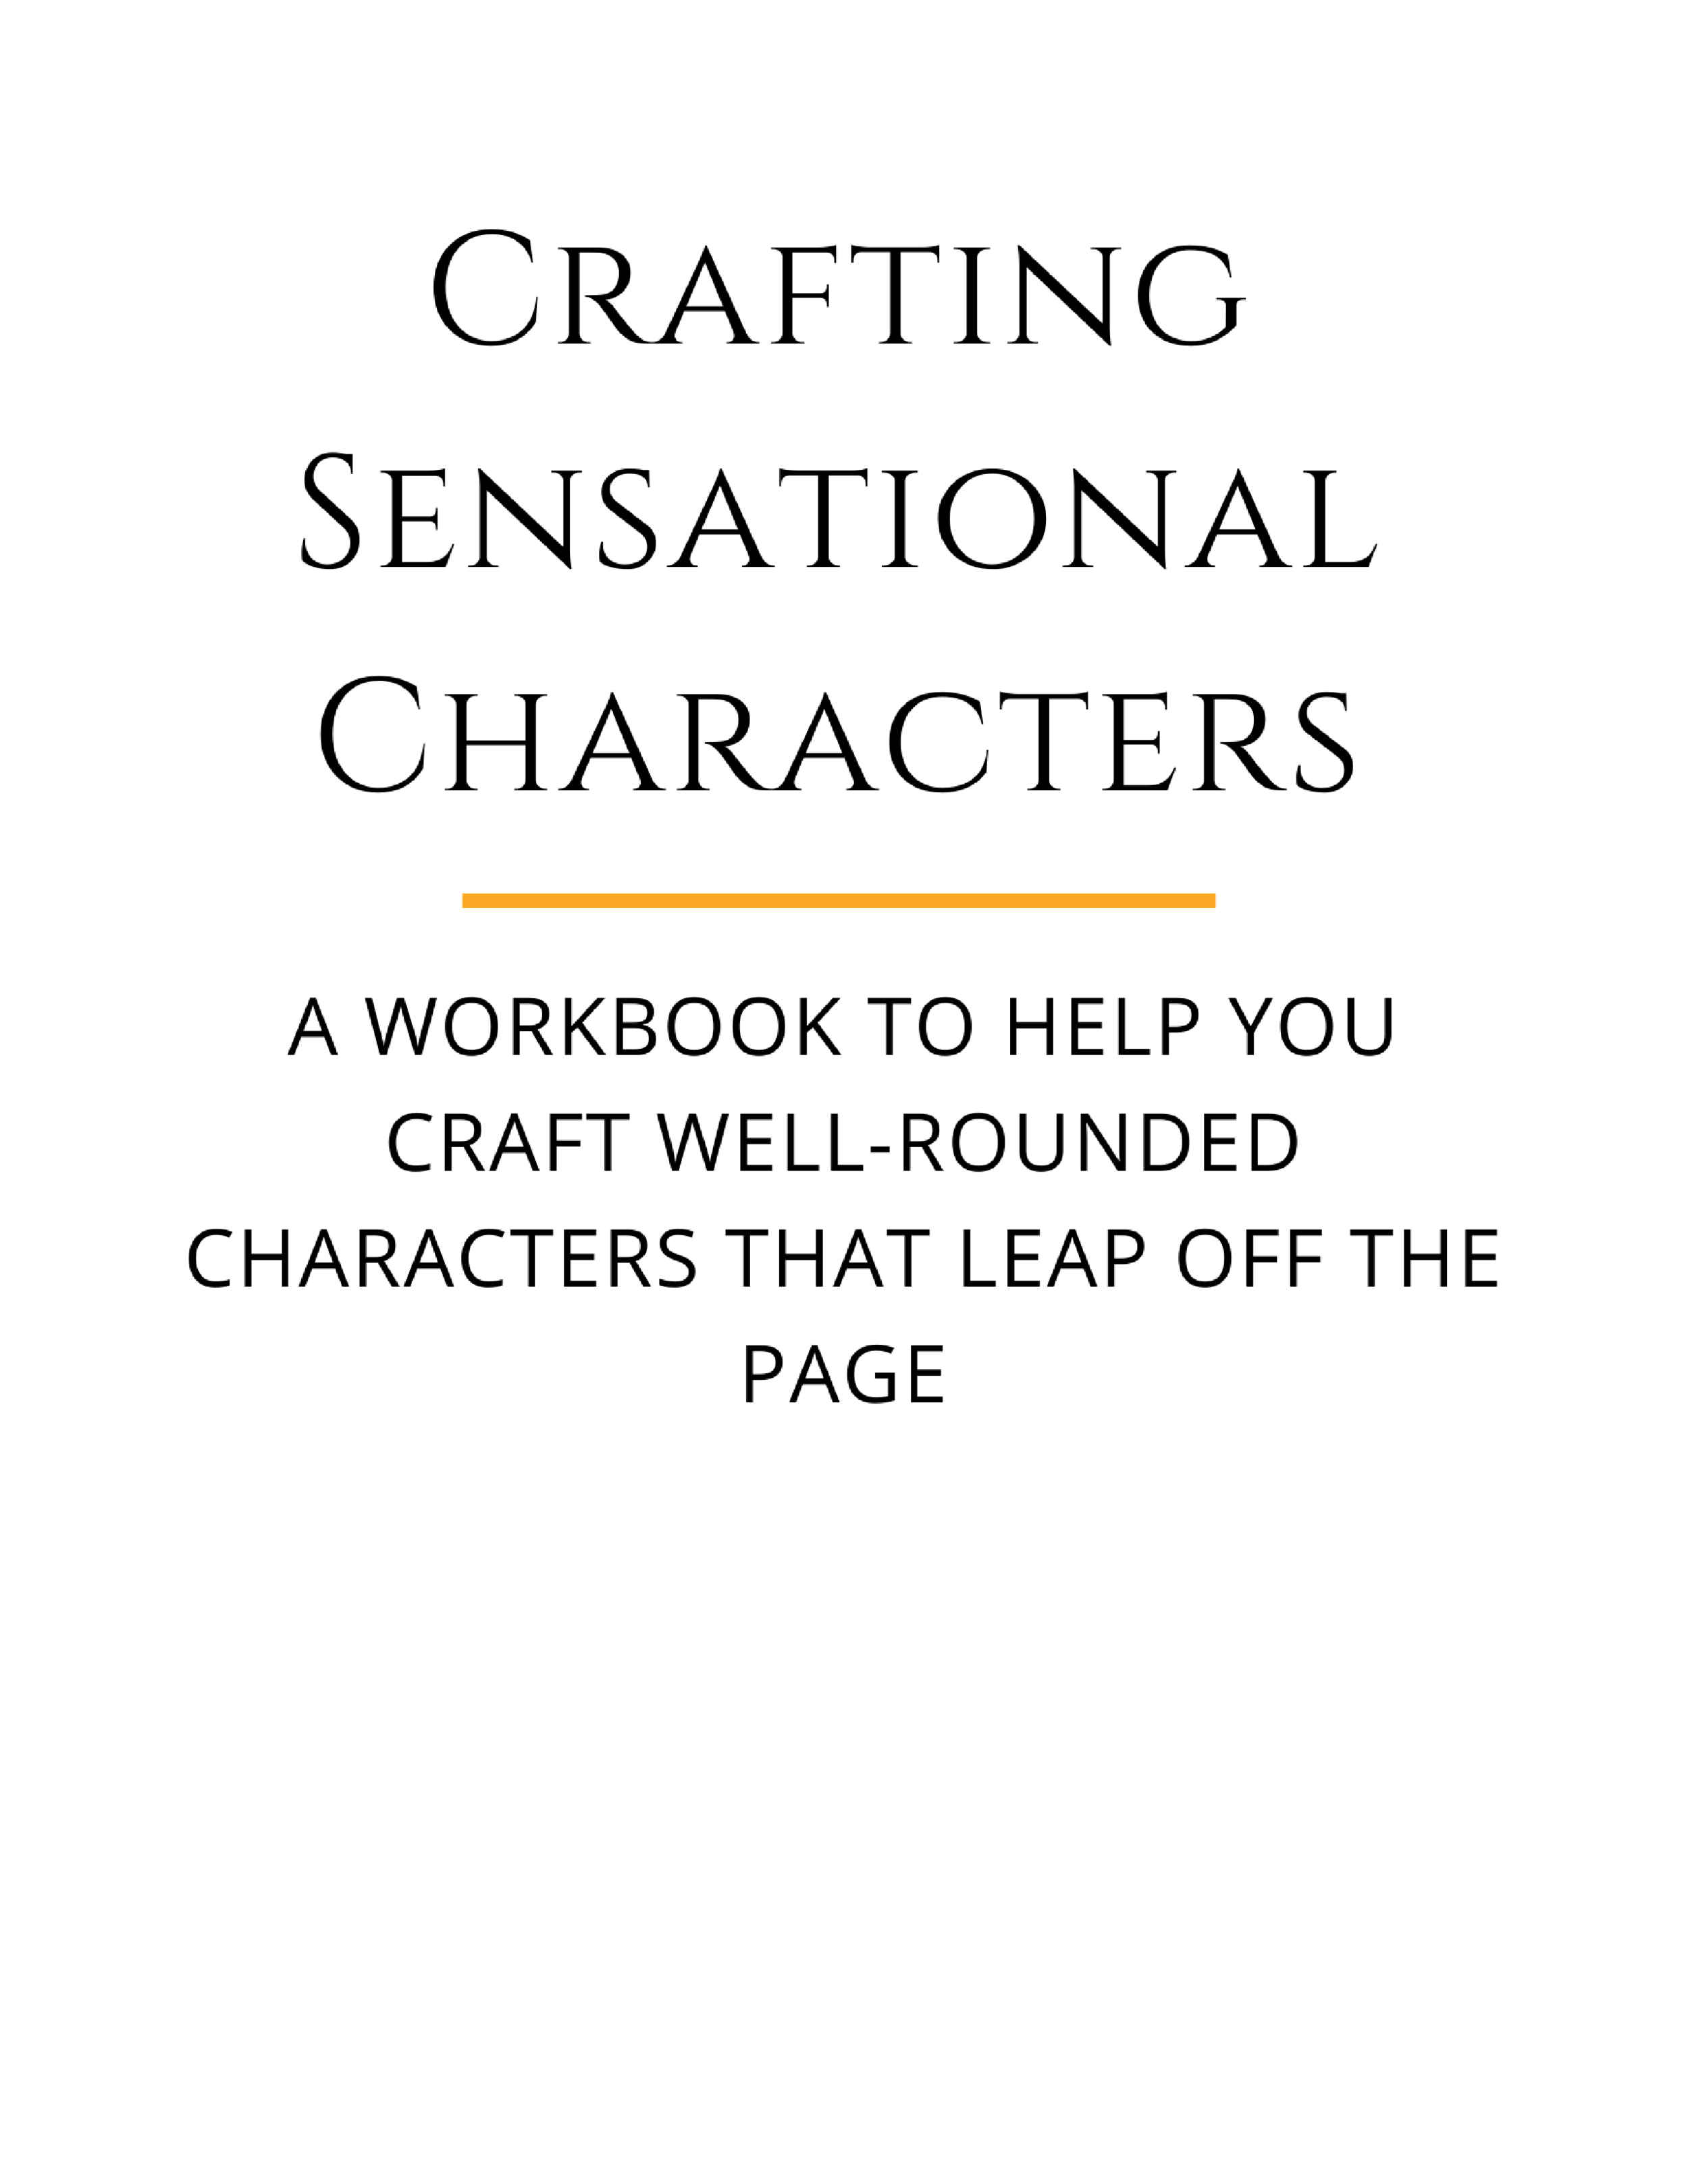 You can get my printable writing workbooks for a pay-what-you-can price. Learn more at https://thewritingkylie.com/